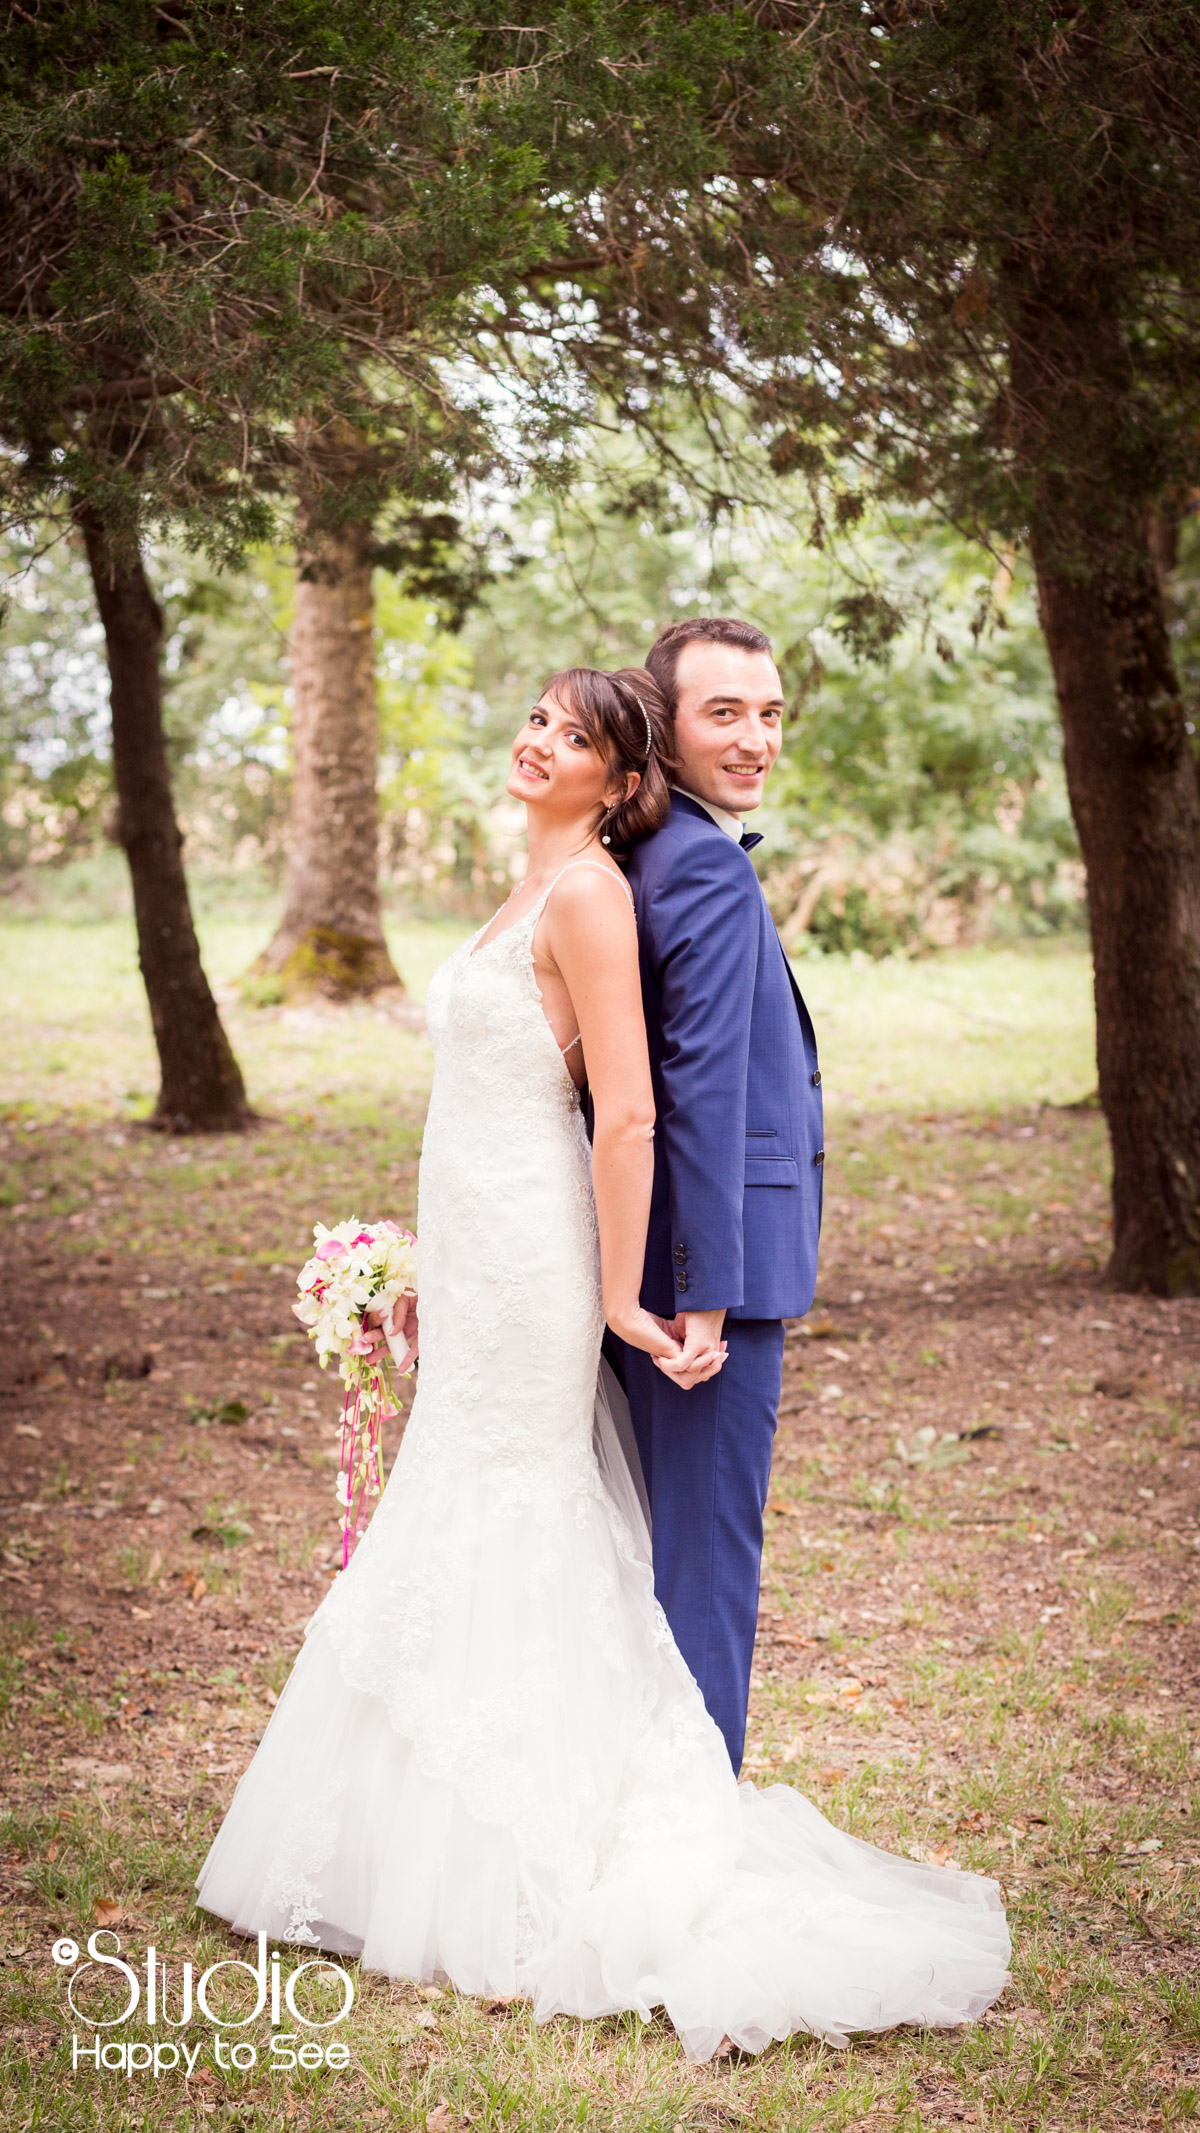 Mariage color toulouse studio happy to see photographe toulouse - Les photos de mariage ...